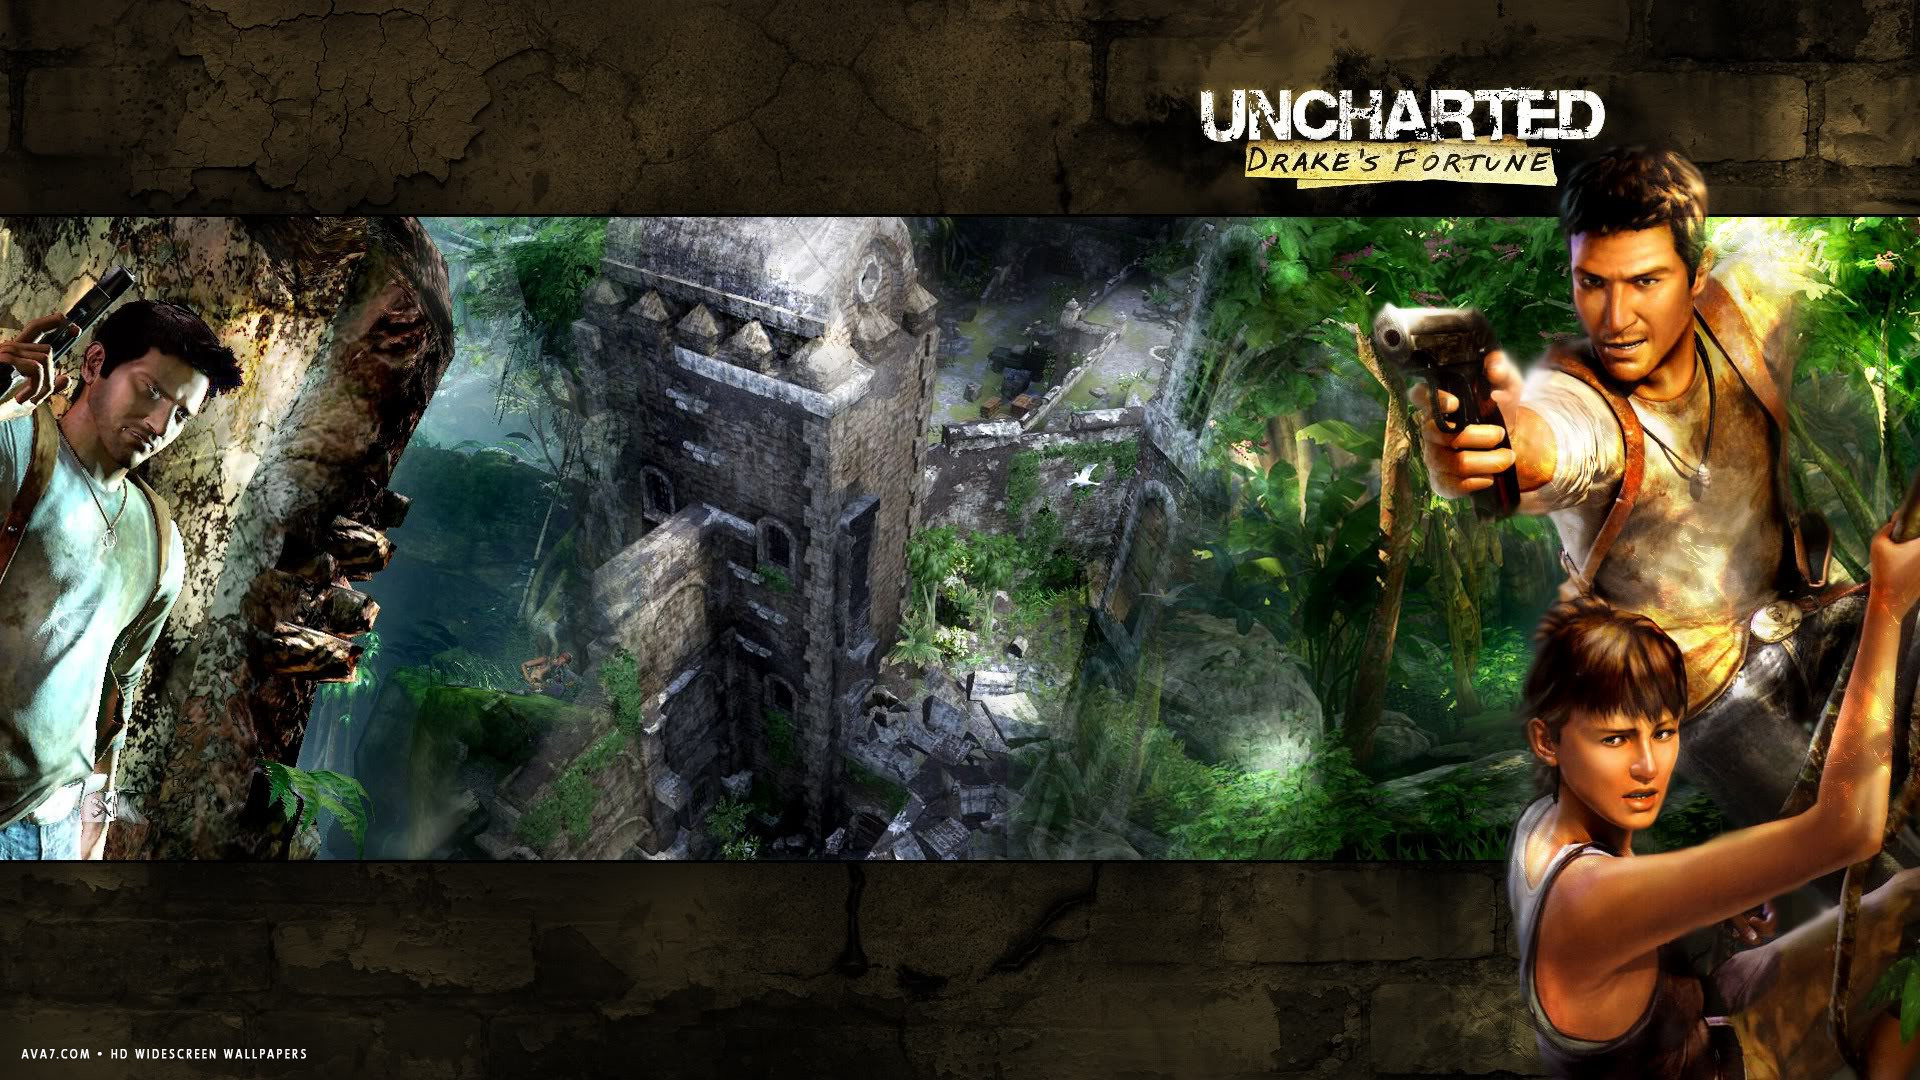 Uncharted Drakes Fortune Game Hd Widescreen Wallpaper